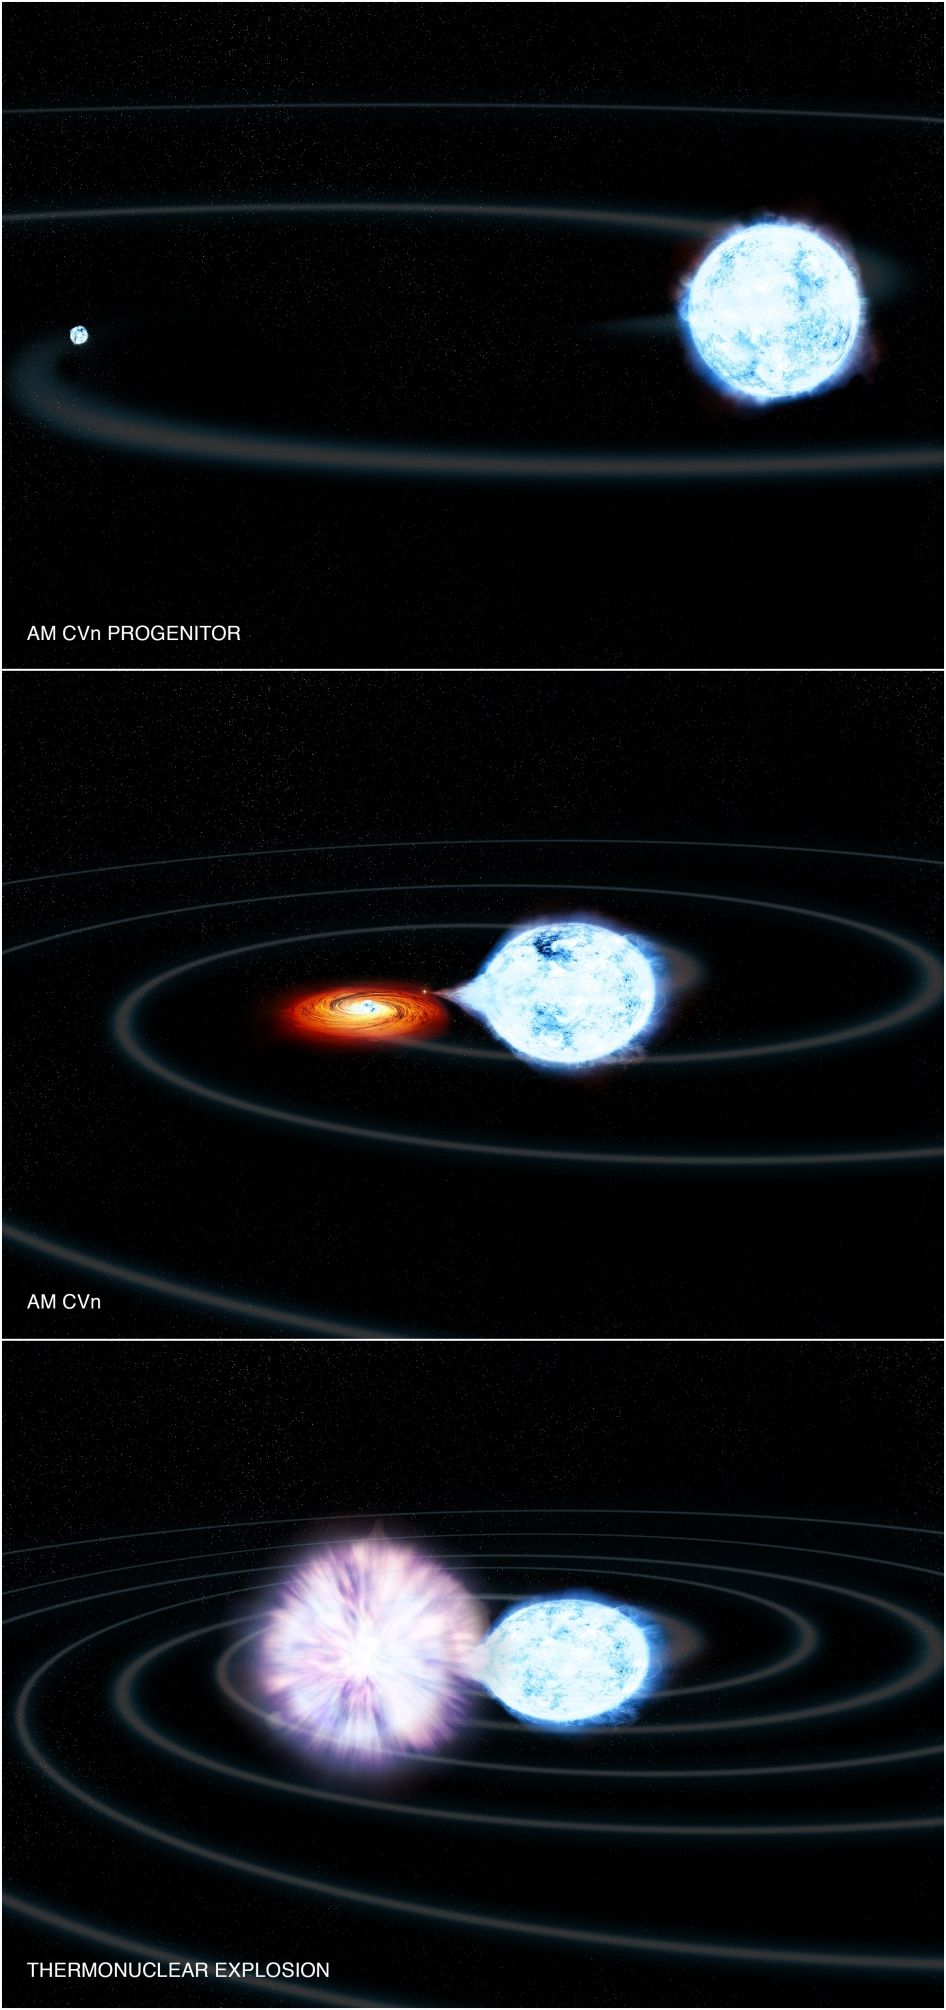 The artist's illustration depicts white dwarf systems and what may happen to them in the future.